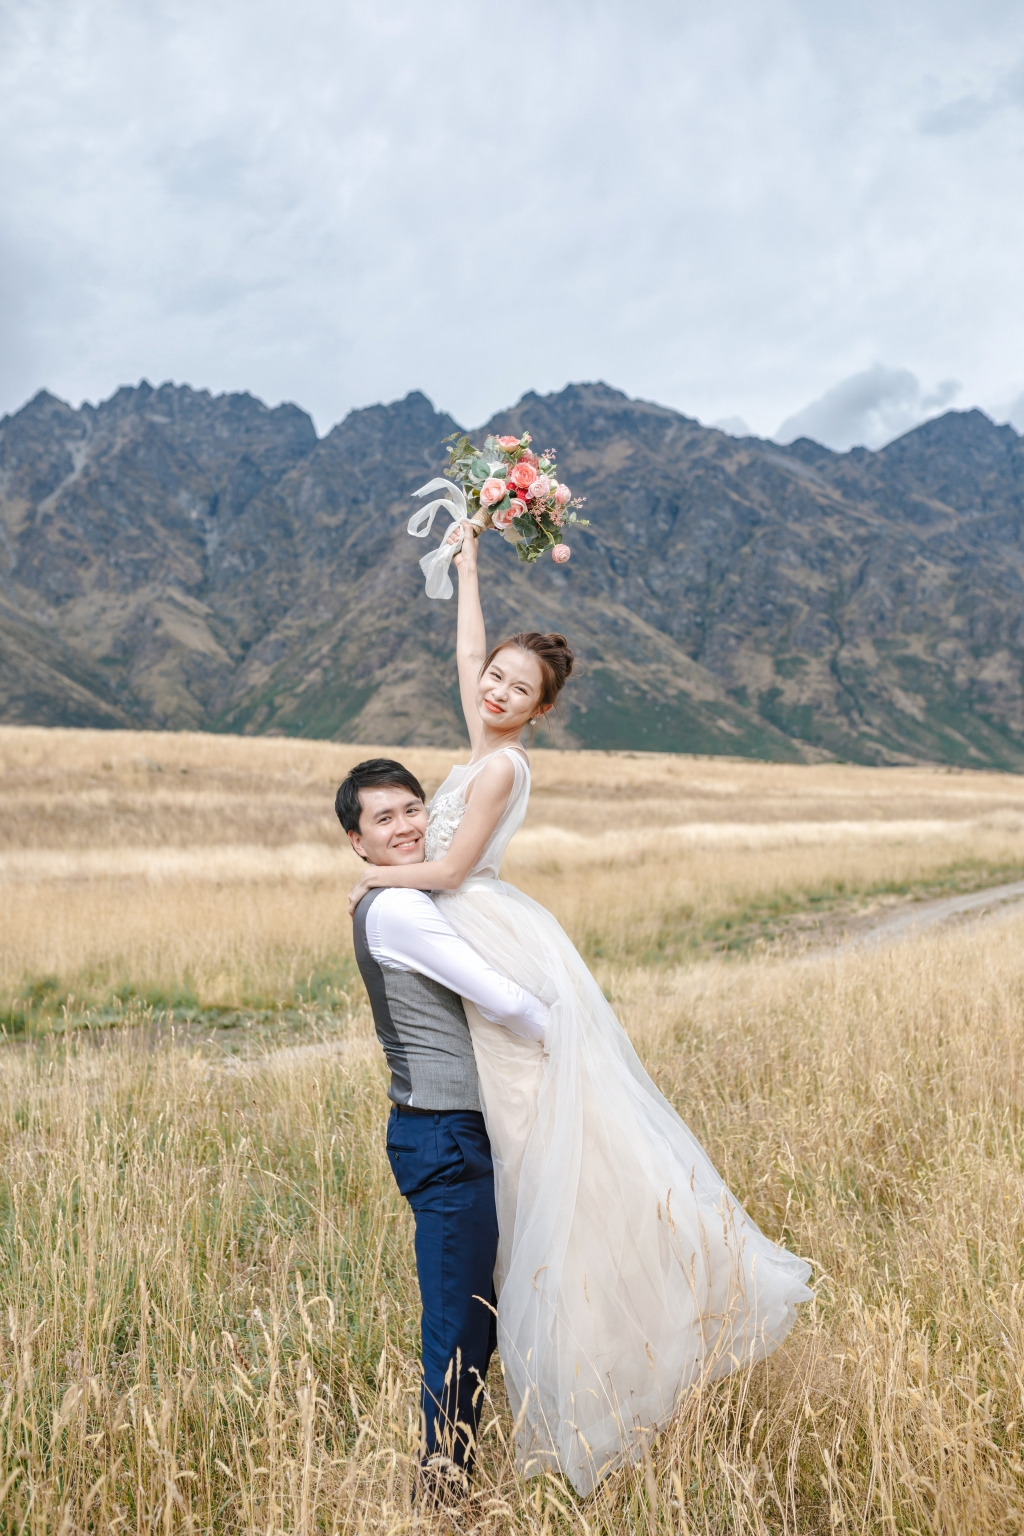 Should You Get Your Wedding Dress From Taobao? - Blog